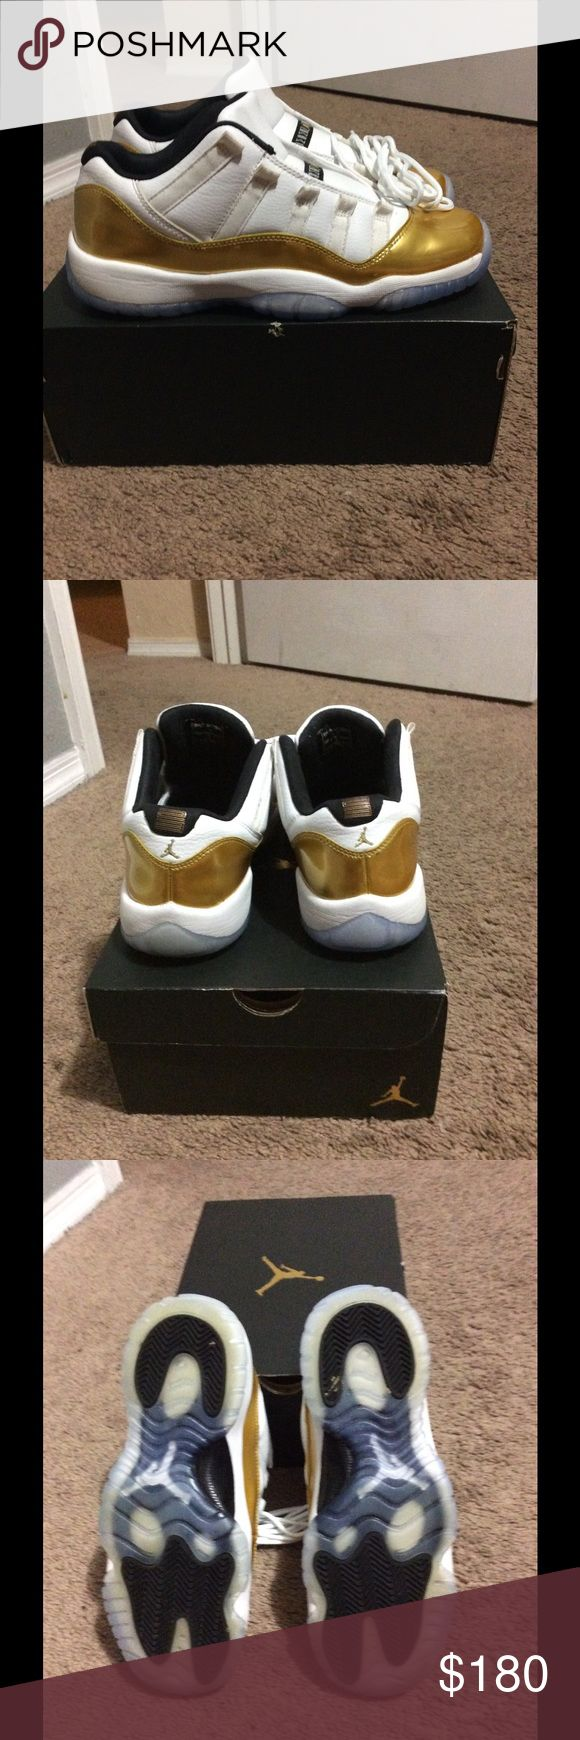 Jordan retro 11 low size 7y Size 7y retro 11 low worn like 5x just looking to get rid of Jordan Shoes Athletic Shoes